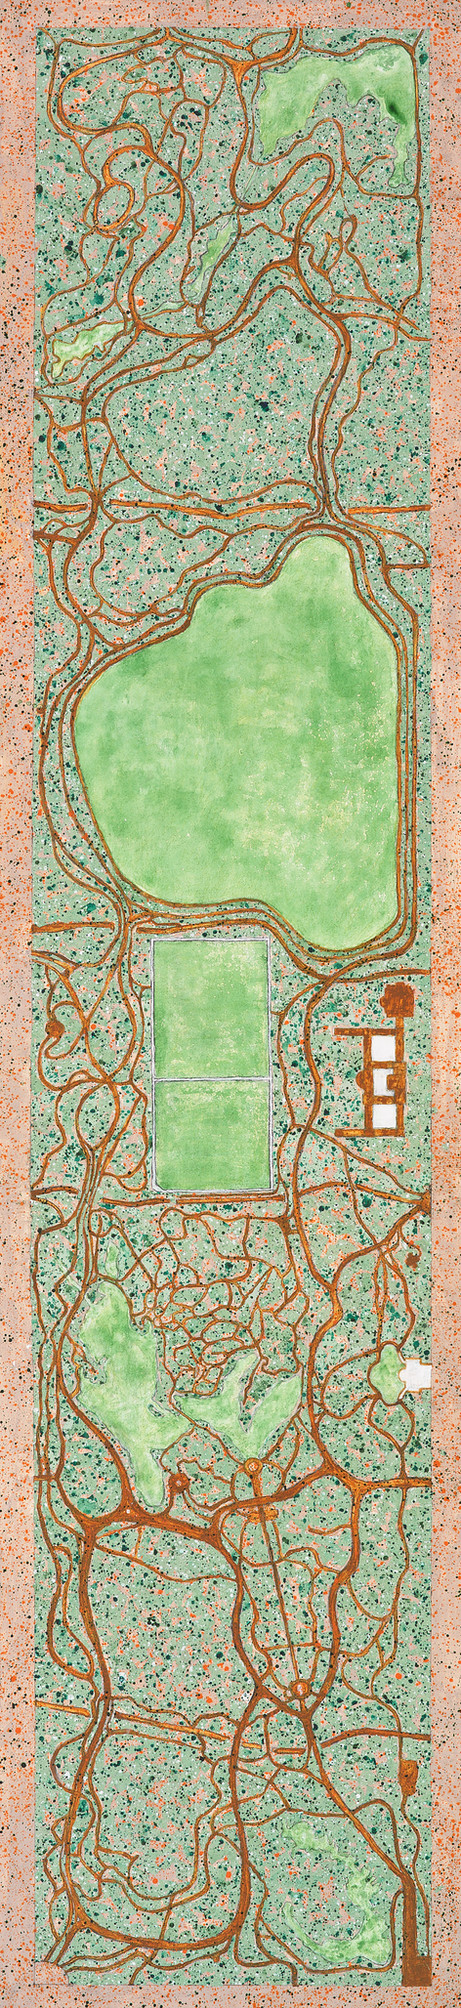 Central Park (Map of Central Park #1)